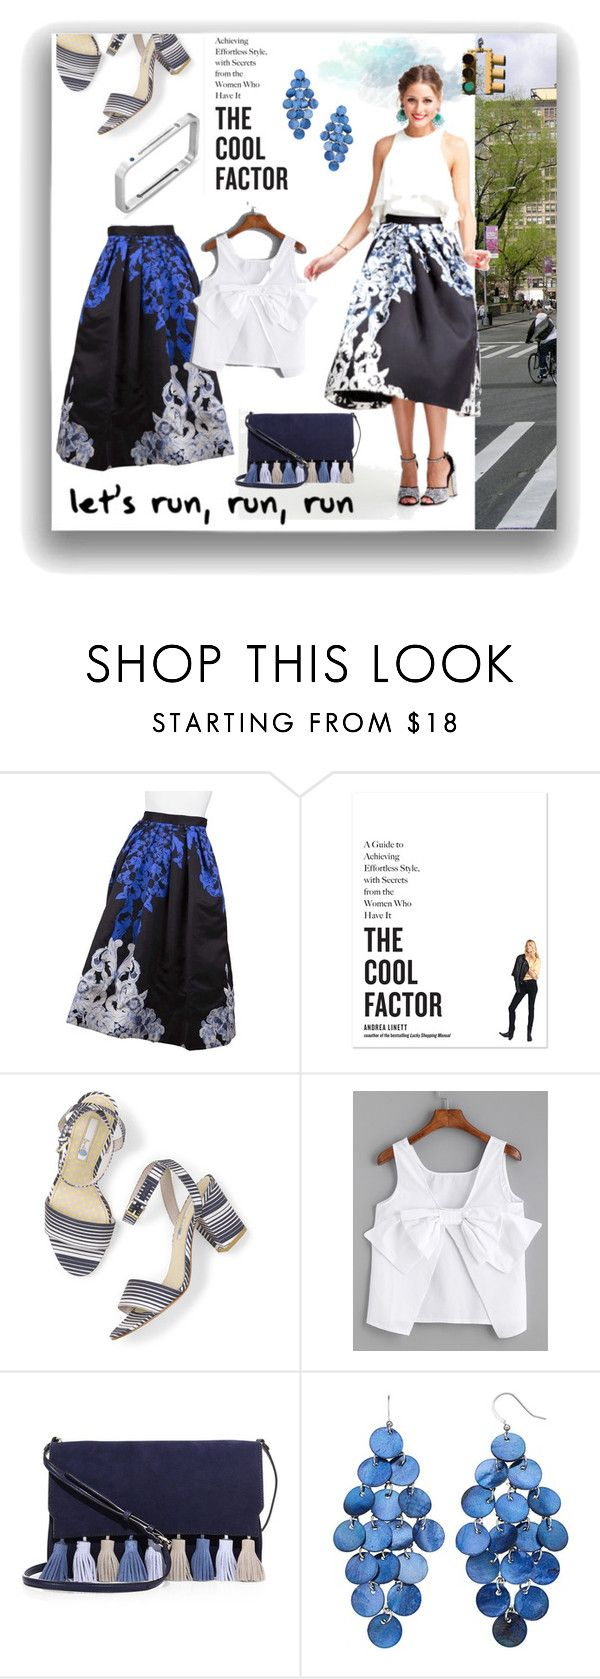 """334"" by believelikebreathing ❤ liked on Polyvore featuring Squarestreet, TIBI, Boden, Rebecca Minkoff and LastSummerDays"